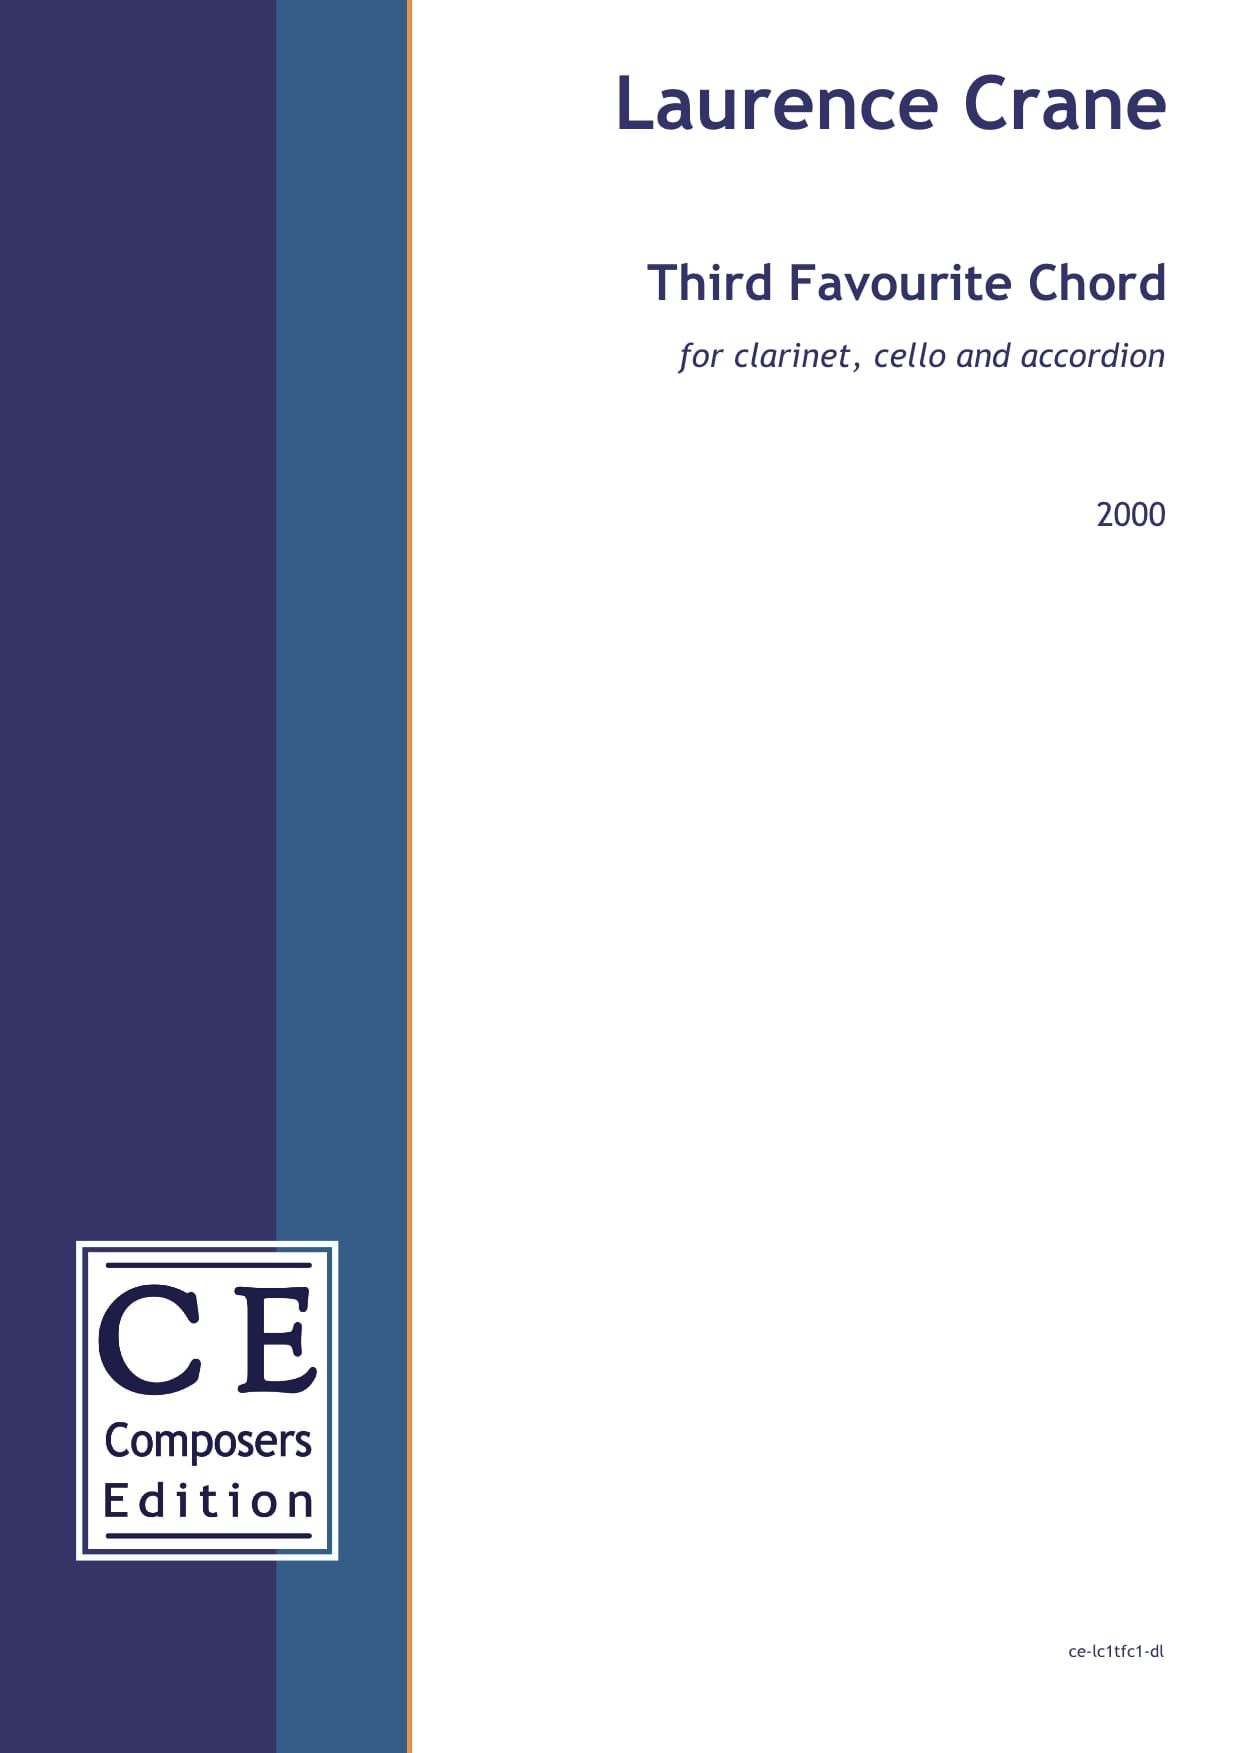 Laurence Crane: Third Favourite Chord for clarinet, cello and accordion